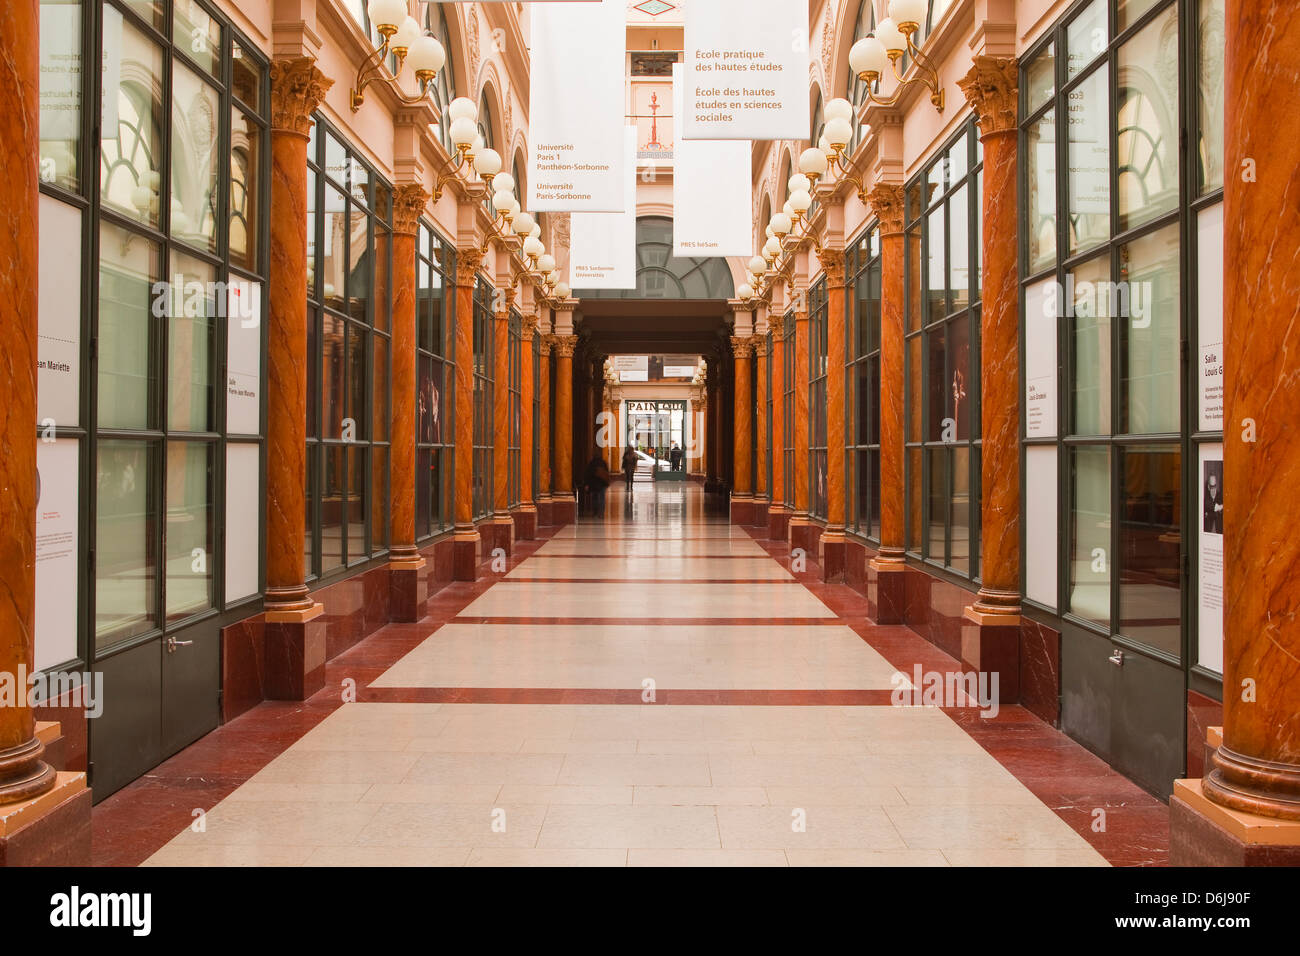 Galerie Colbert in central Paris, France, Europe - Stock Image